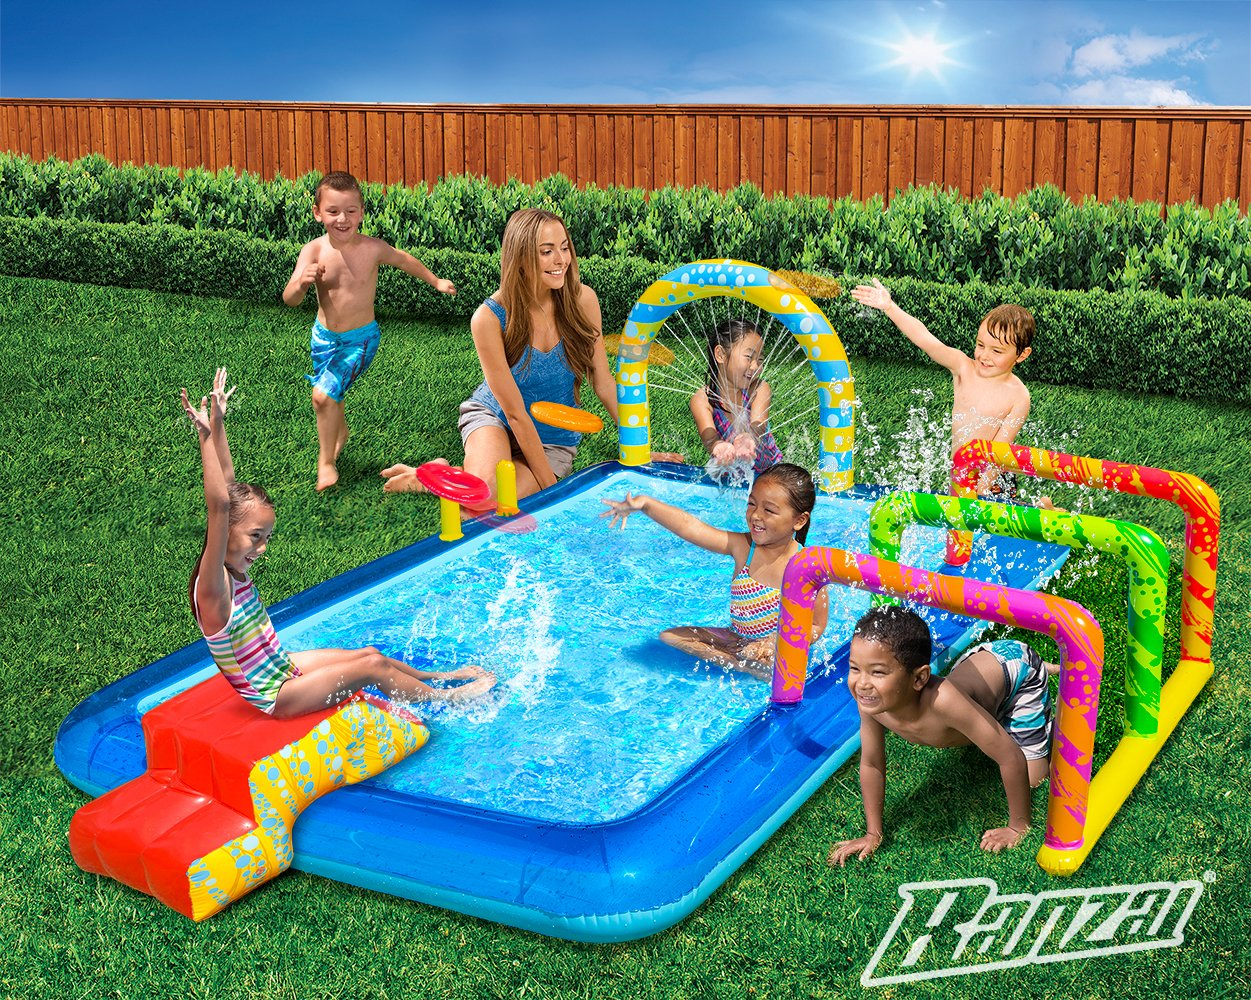 Activity pool inflatable water slide spray swimming kids - Swimming pool activities for kids ...